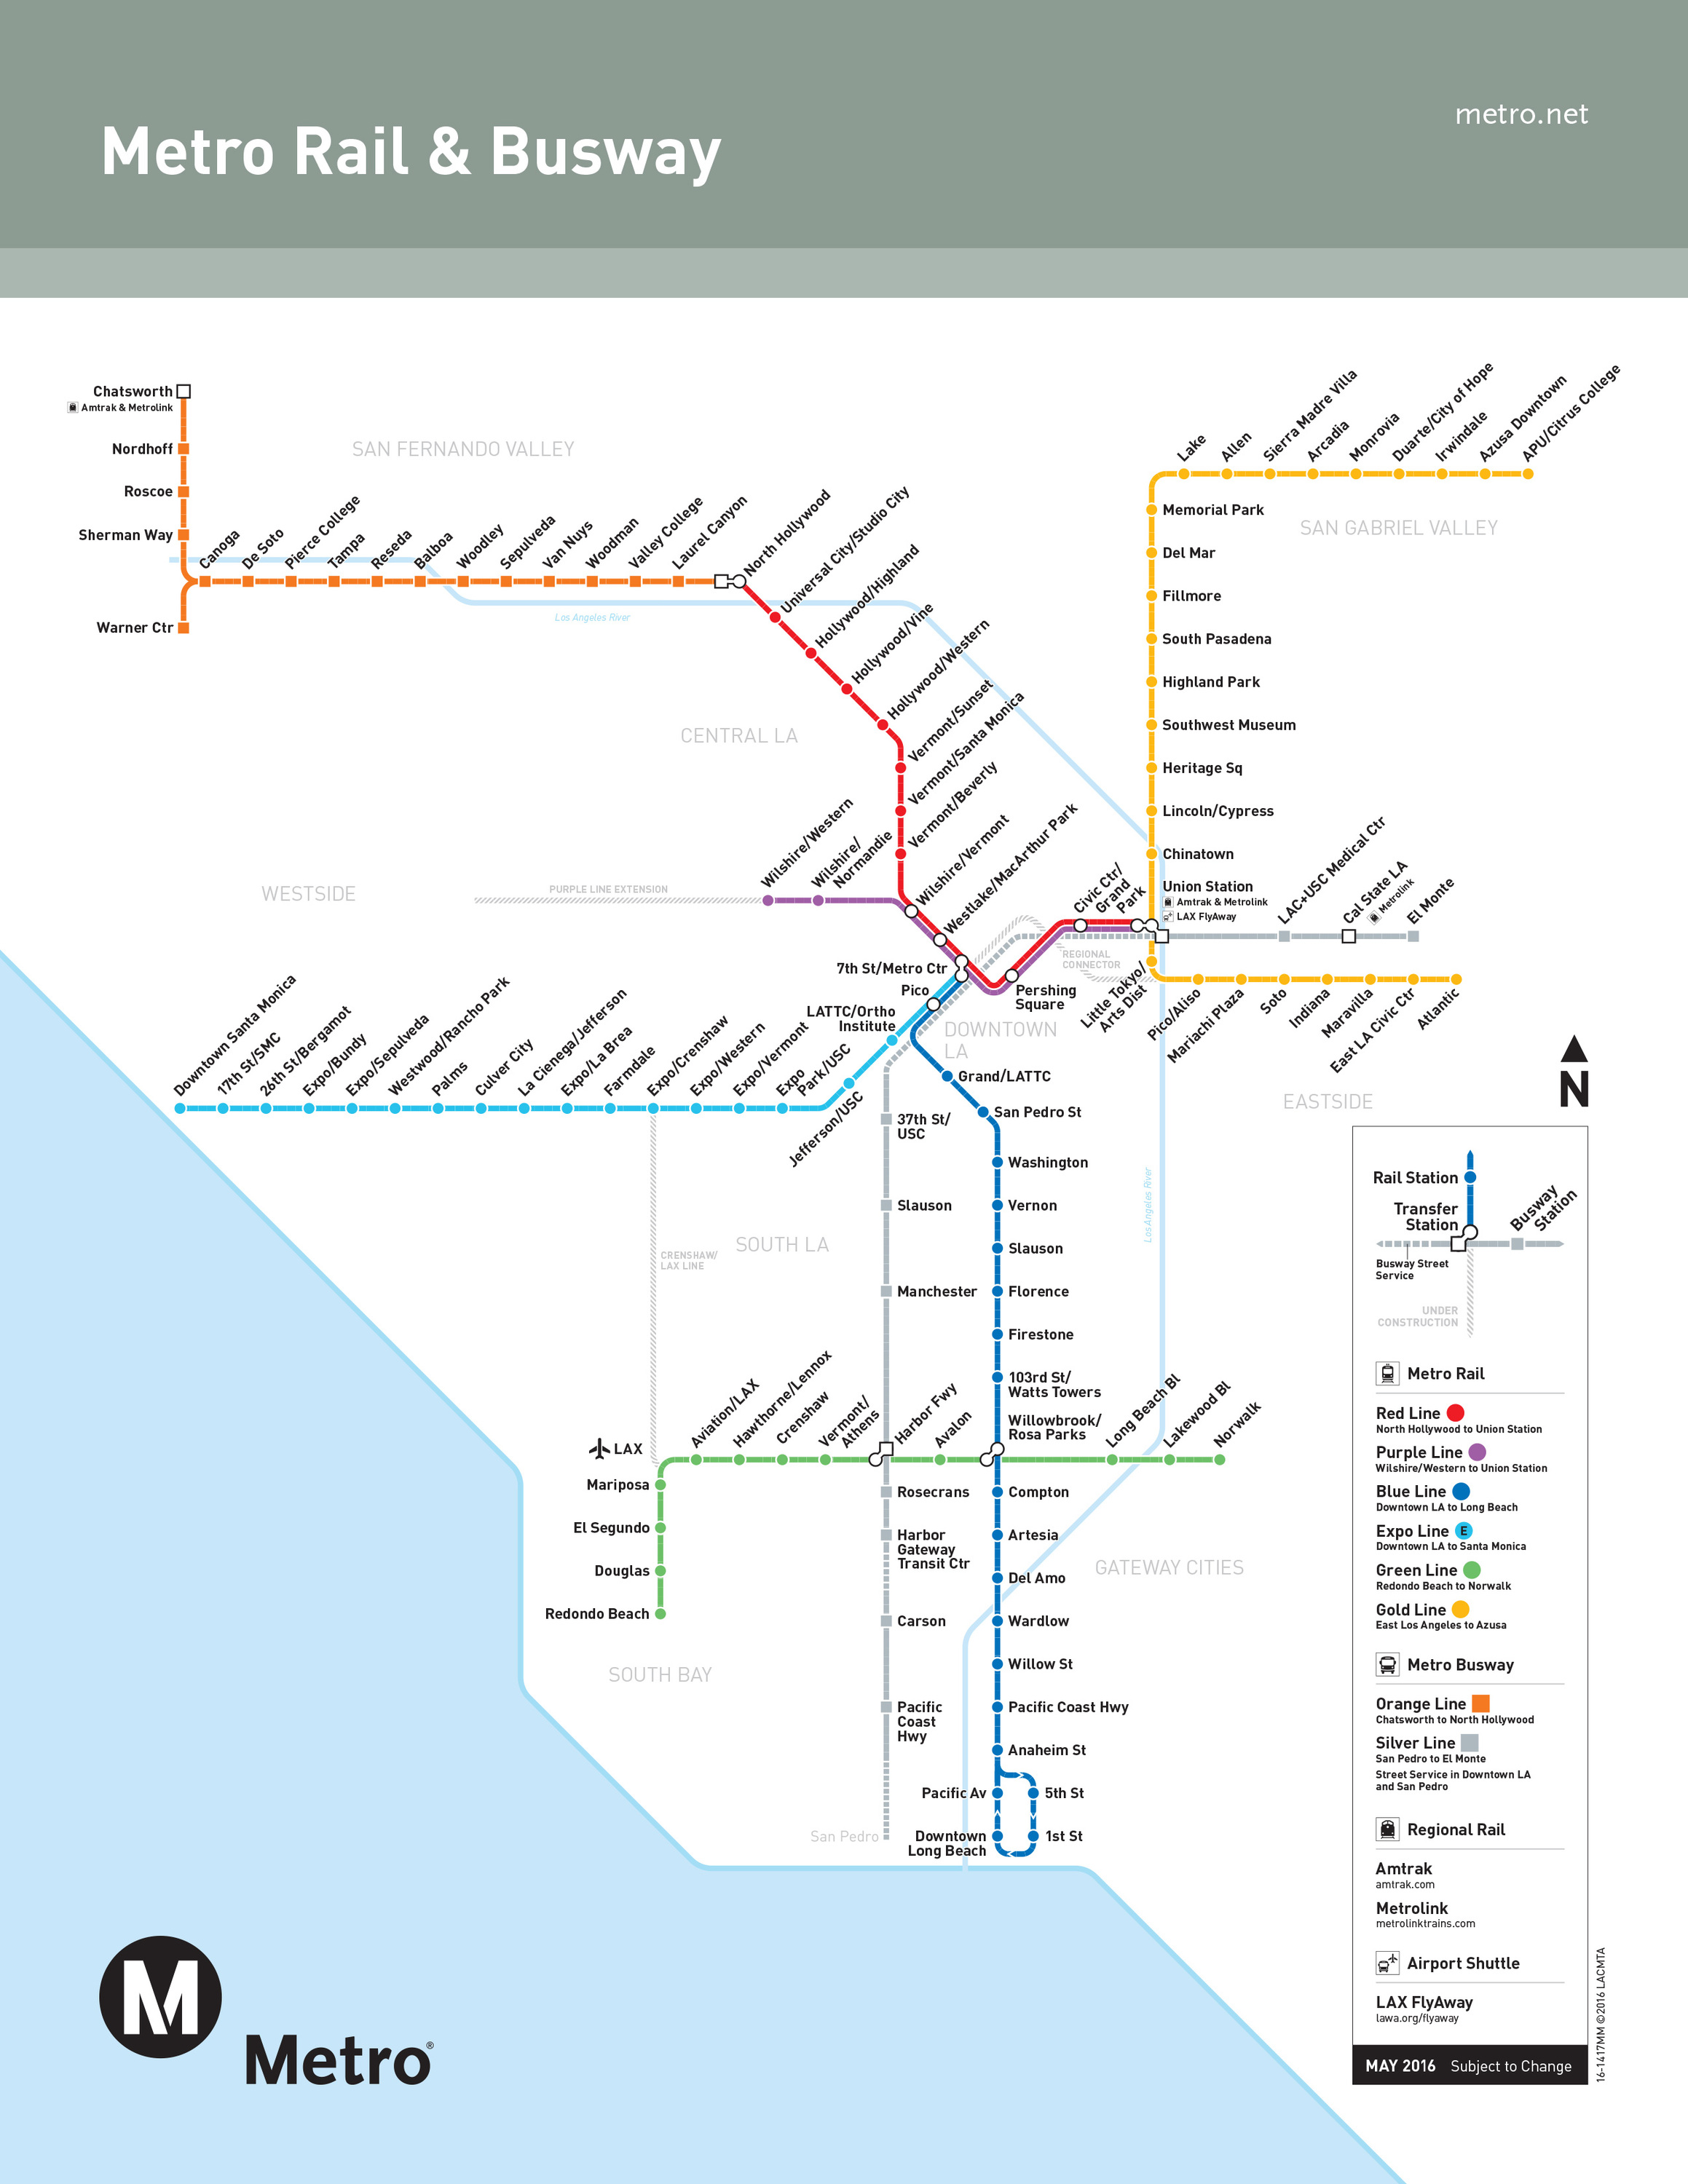 A beginners guide to the Los Angeles Metro system